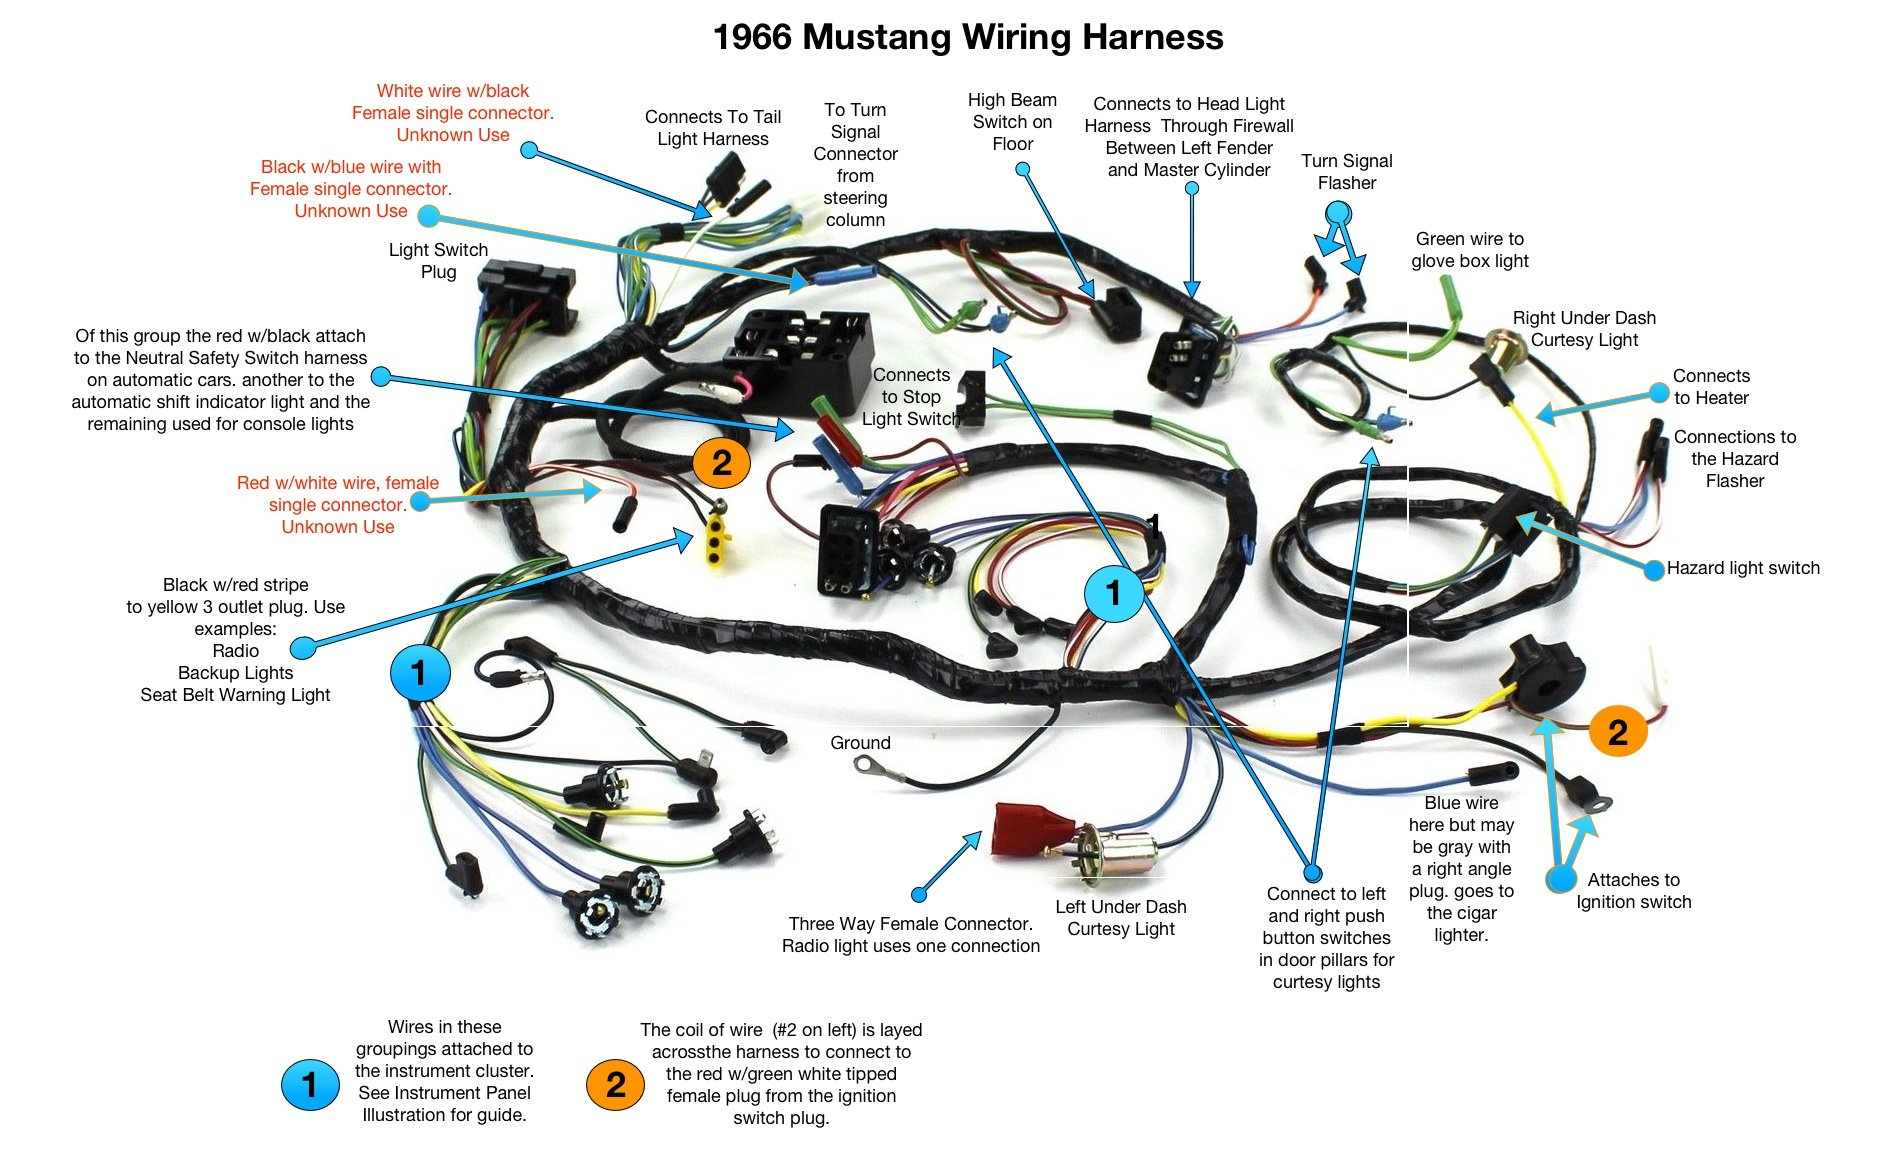 Wiring Harness Diagram Ford Mustang Will Be A Thing 99 Lumina Turn Signal 66 Forum Rh Allfordmustangs Com 1999 Stereo 2000